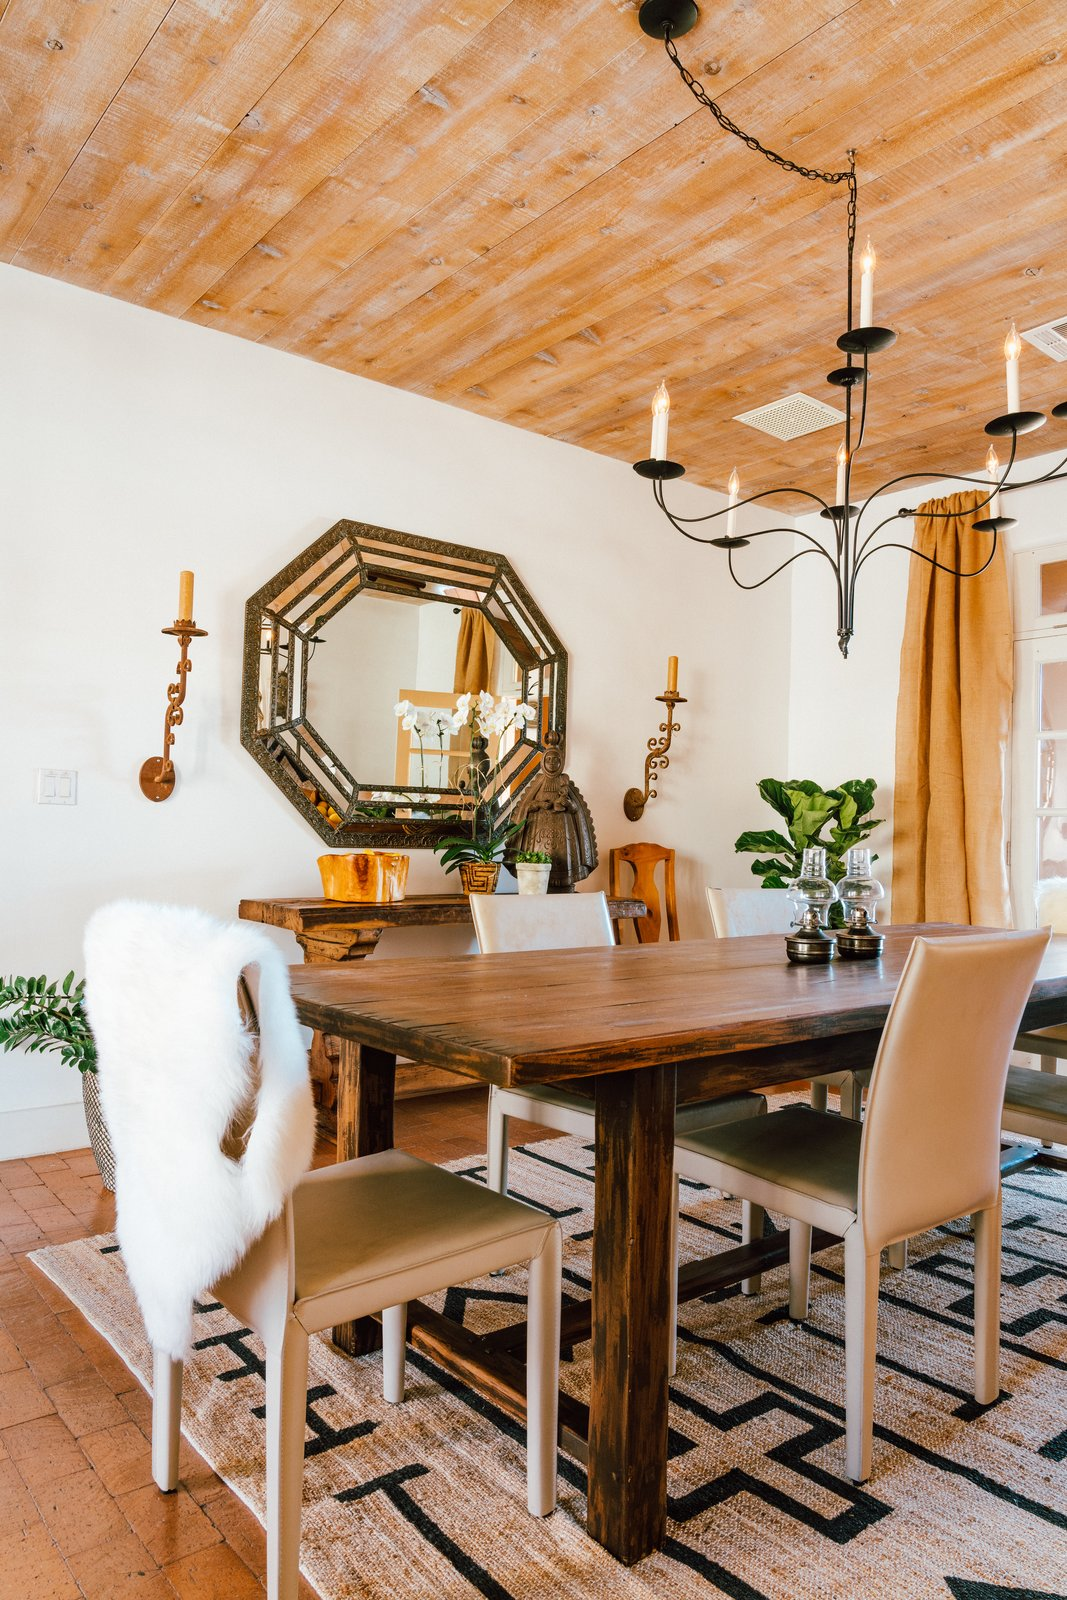 Young took cues from the home's architecture to refine the space while filling it with fresh decor. The floors are brick laid in sand, while large plank wood ceilings lie overhead. Adding to the neutral palette, the dining room is teeming with textures. (Tim Melideo)